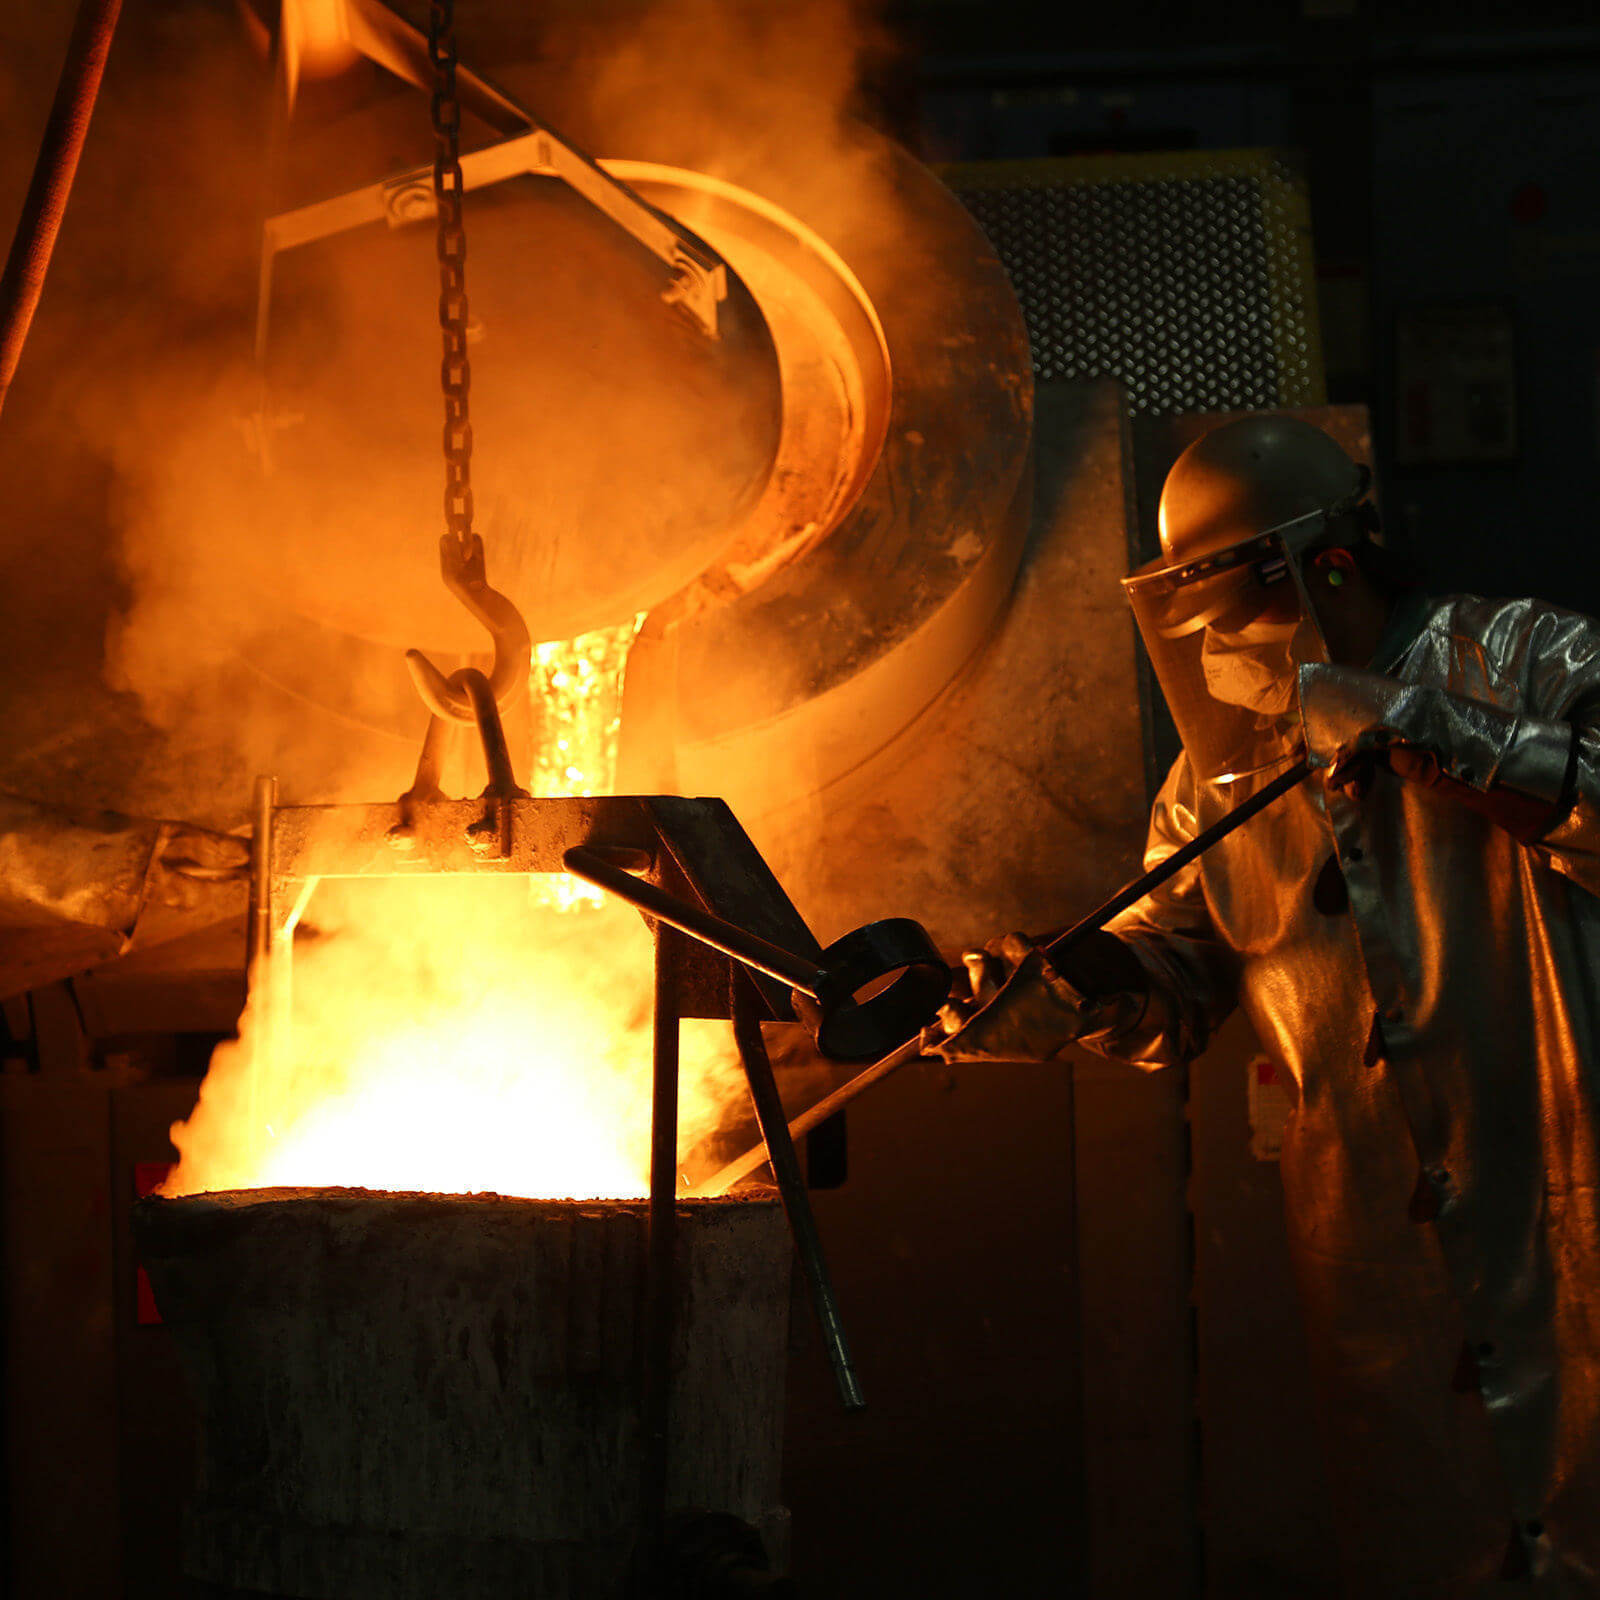 Molten Metal Working